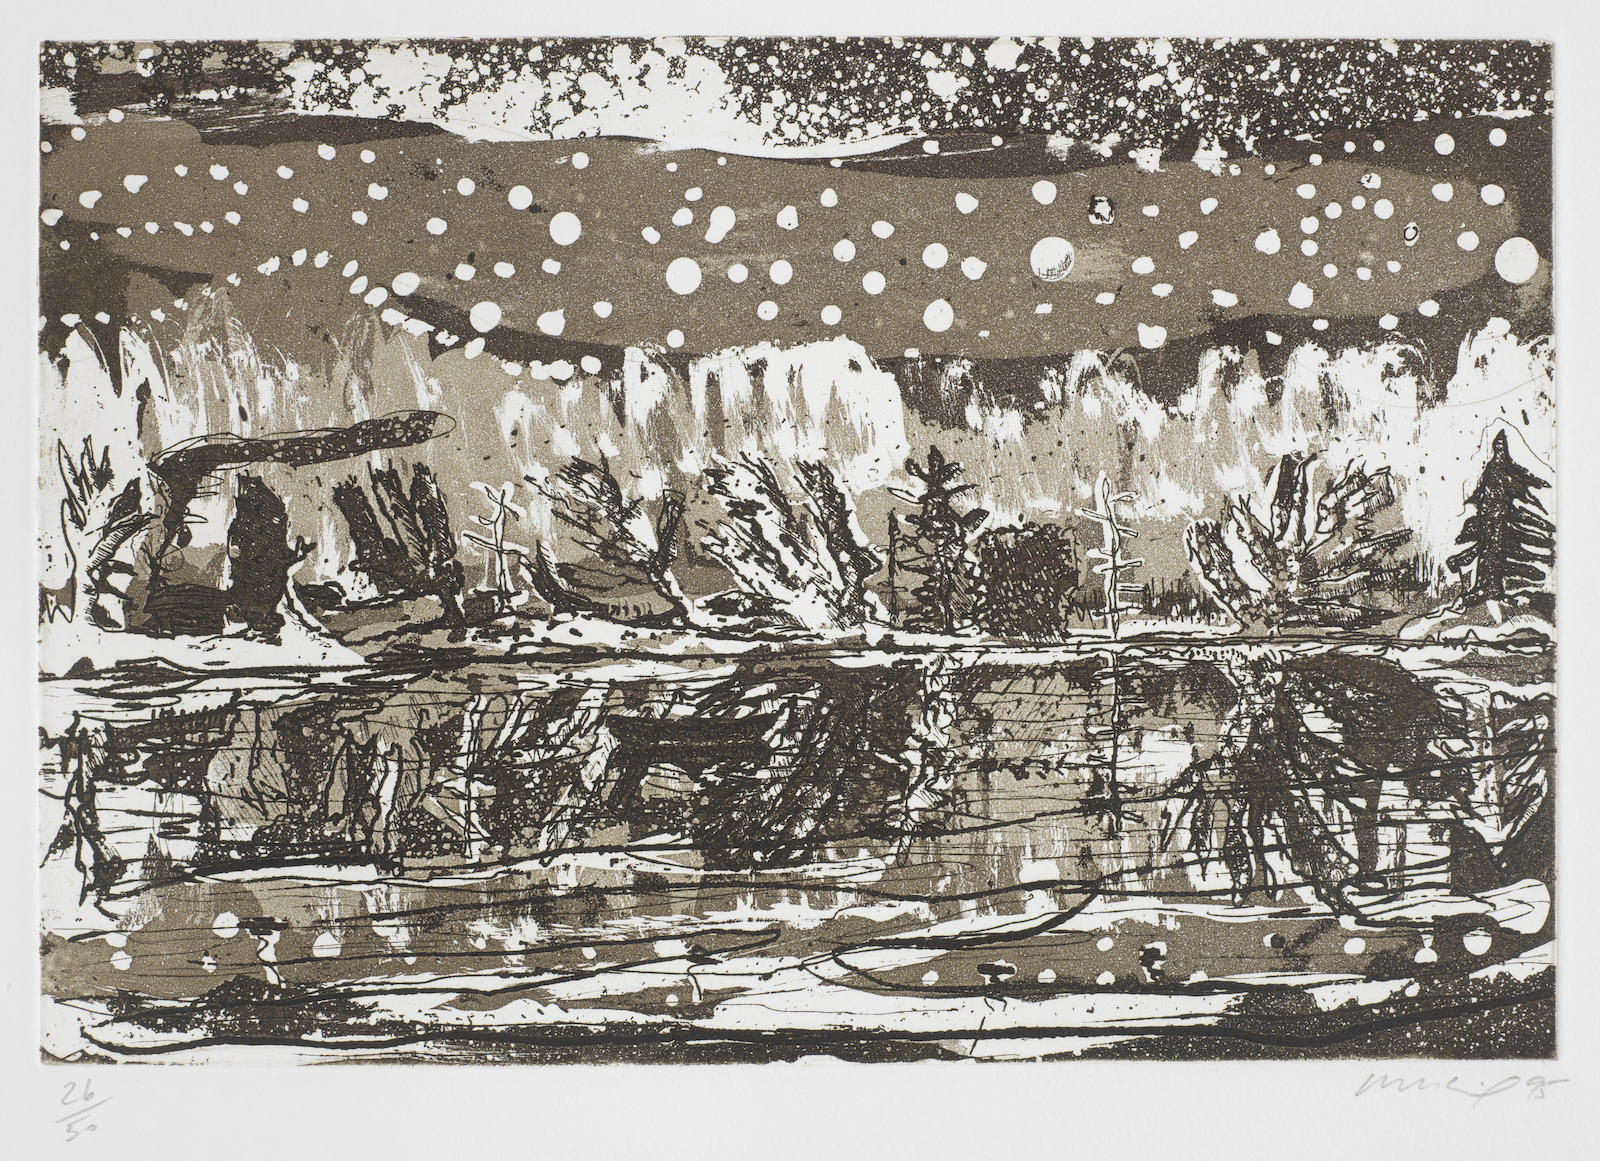 Peter Doig-Night Fishing, from Stutz Mappe Portfolio-1995